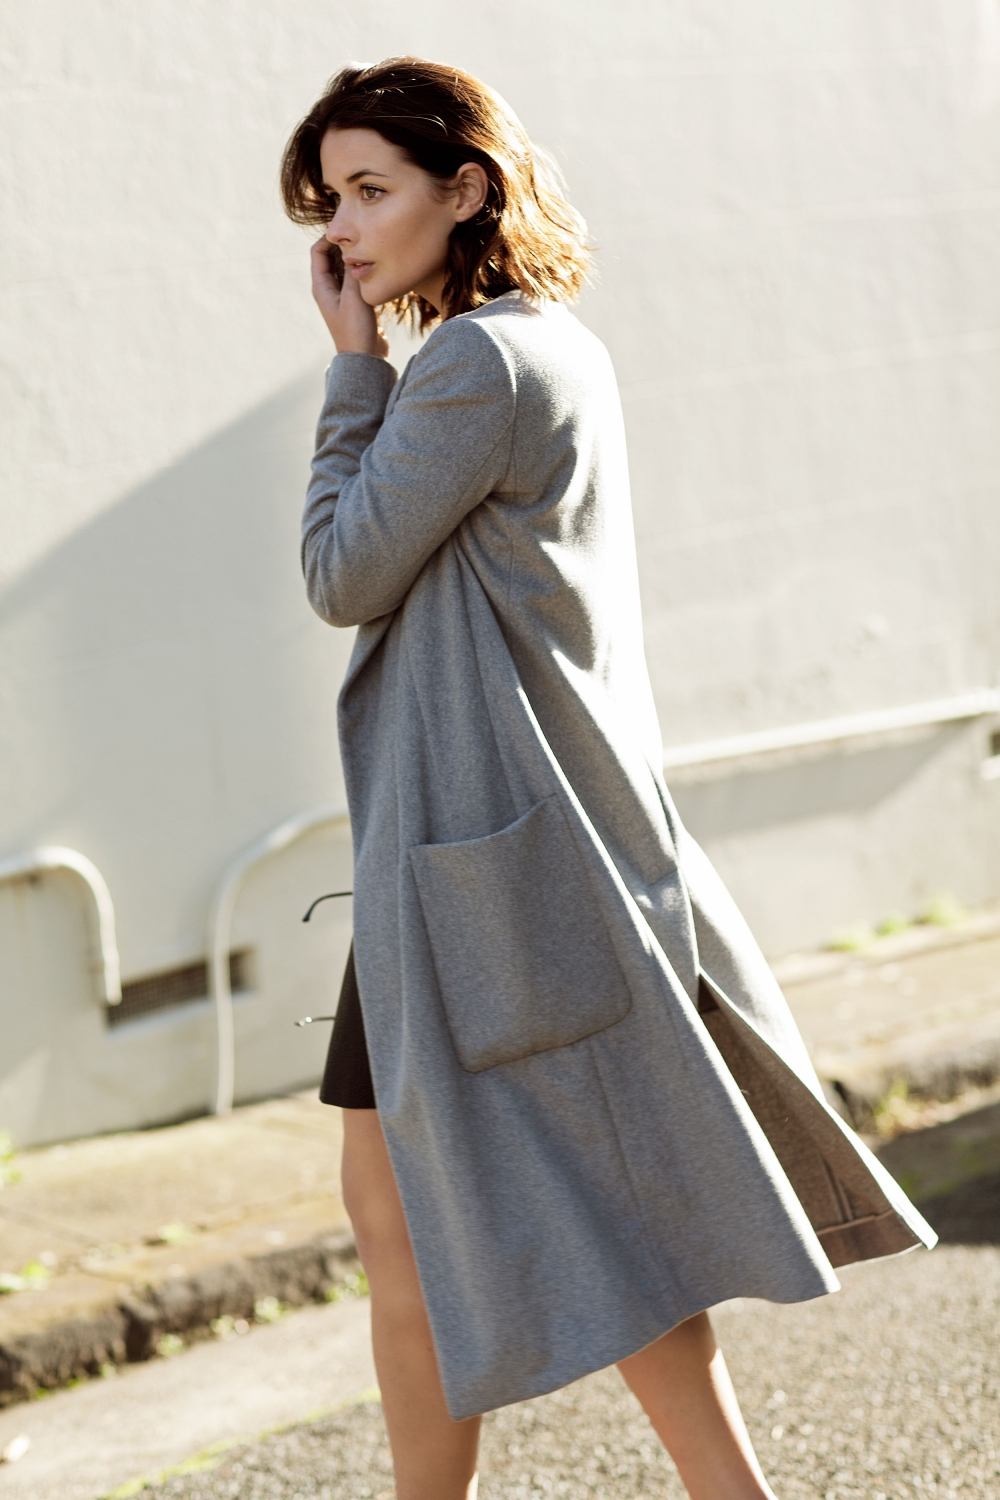 harper-and-harley_grey-coat_long-length-over-short-lenghts_winter-outfit-inspiration_fashio-blogger_4